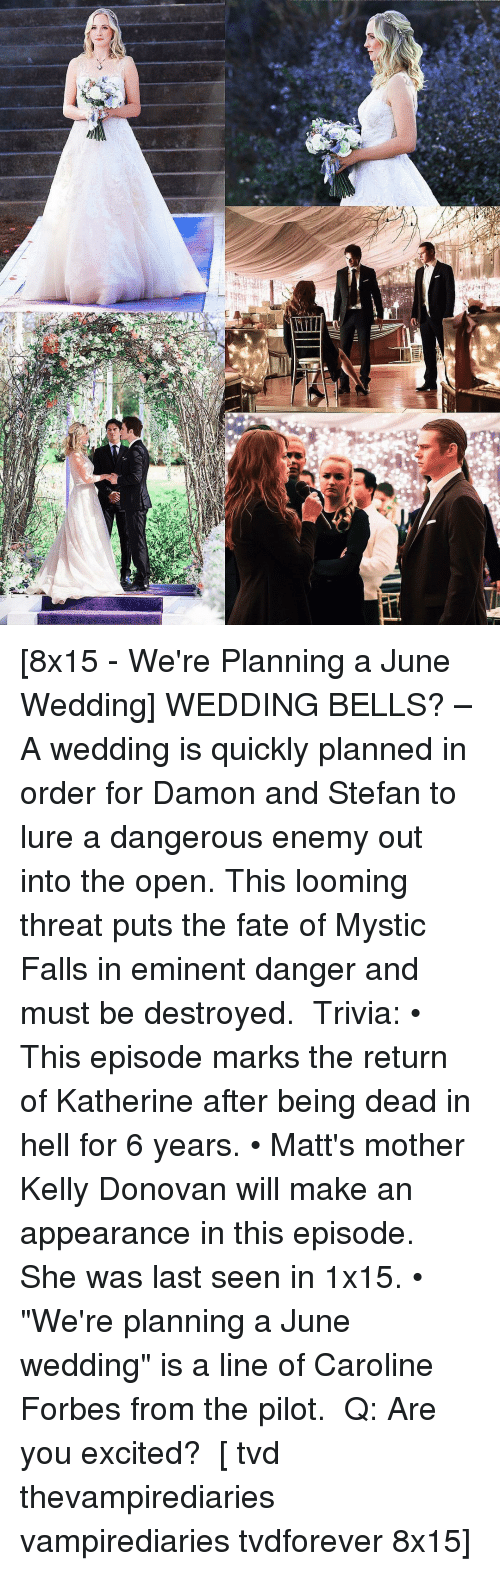 """Memes, Fate, and Mysticism: r [8x15 - We're Planning a June Wedding] WEDDING BELLS? – A wedding is quickly planned in order for Damon and Stefan to lure a dangerous enemy out into the open. This looming threat puts the fate of Mystic Falls in eminent danger and must be destroyed. ⠀ Trivia: • This episode marks the return of Katherine after being dead in hell for 6 years. • Matt's mother Kelly Donovan will make an appearance in this episode. She was last seen in 1x15. • """"We're planning a June wedding"""" is a line of Caroline Forbes from the pilot. ⠀ Q: Are you excited? ⠀ [ tvd thevampirediaries vampirediaries tvdforever 8x15]"""